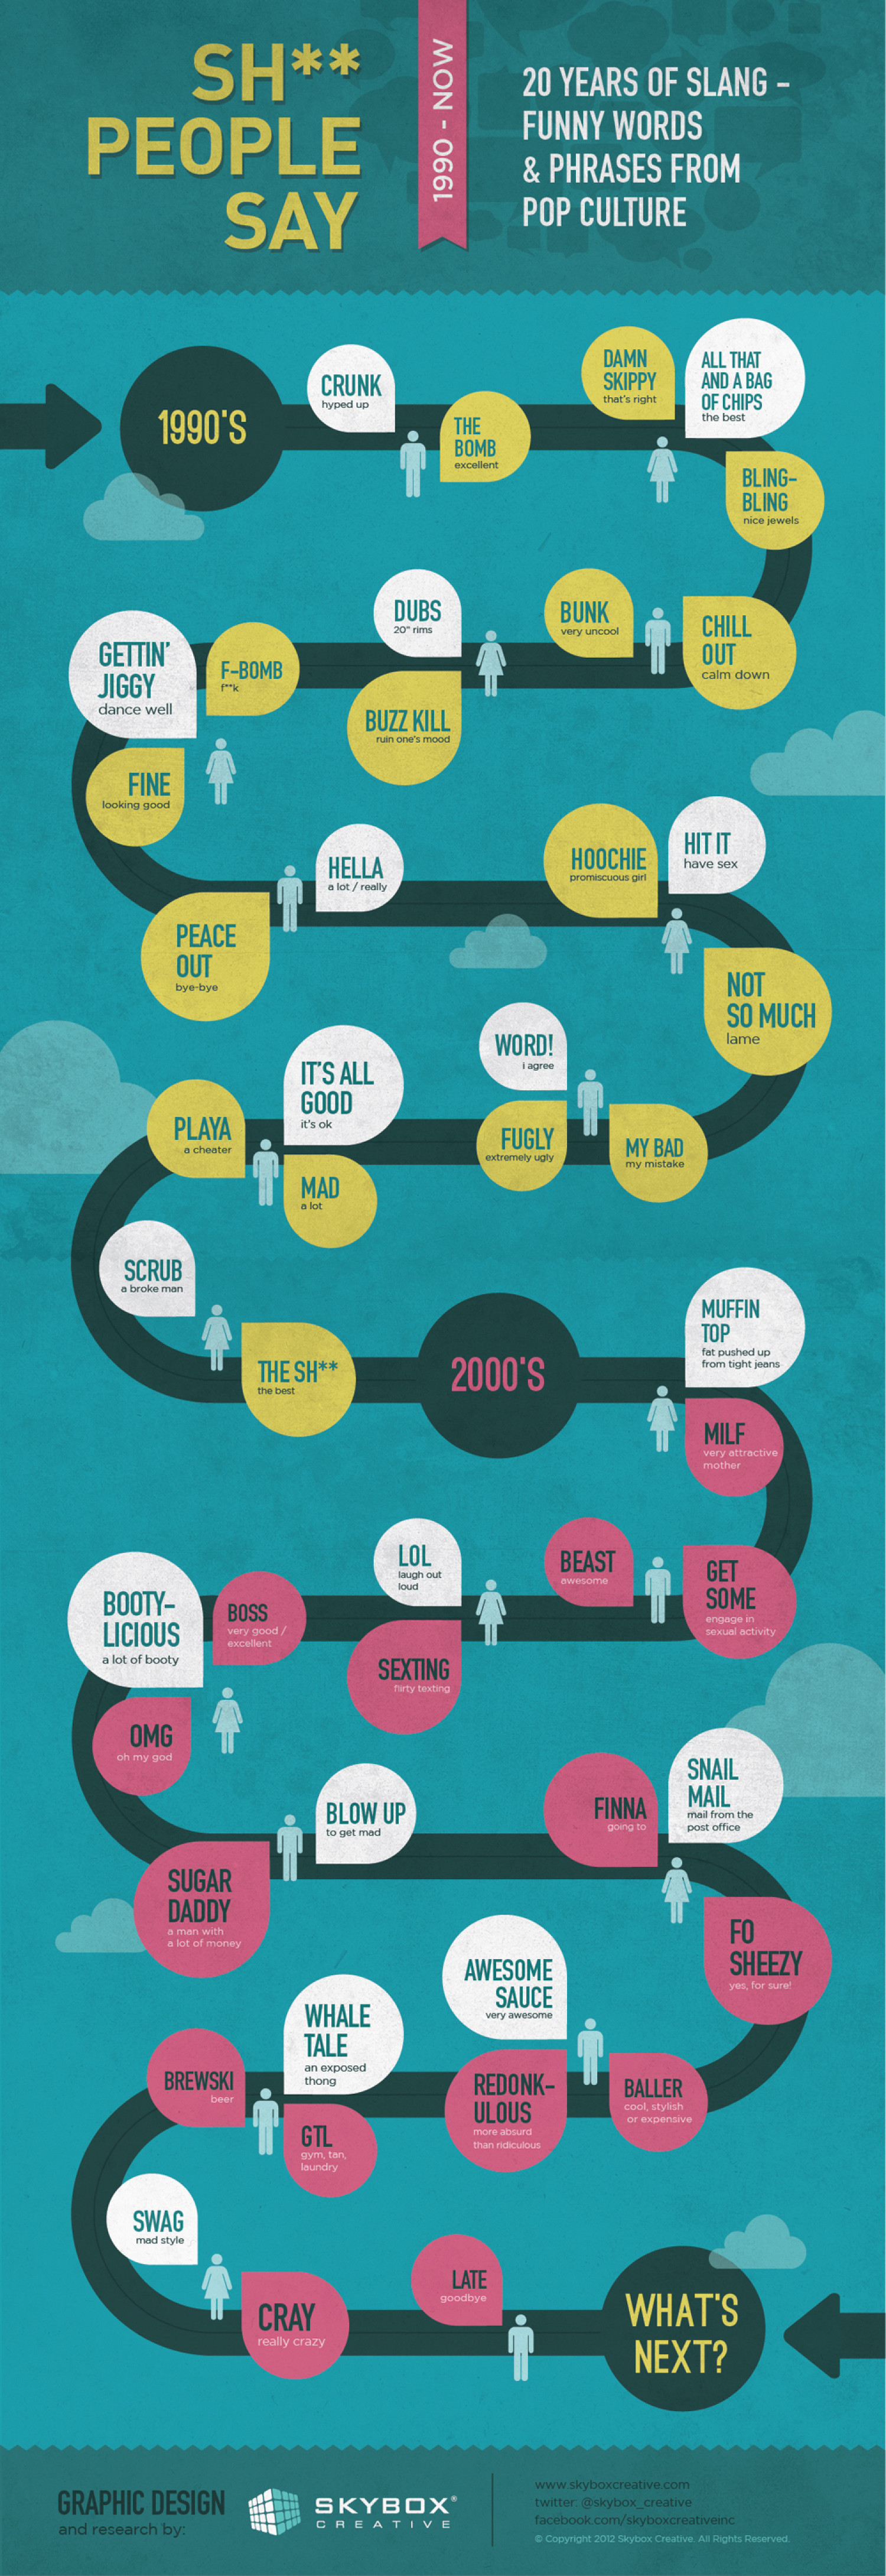 Sh** People Say - 20 Years of Pop Culture Slang Infographic